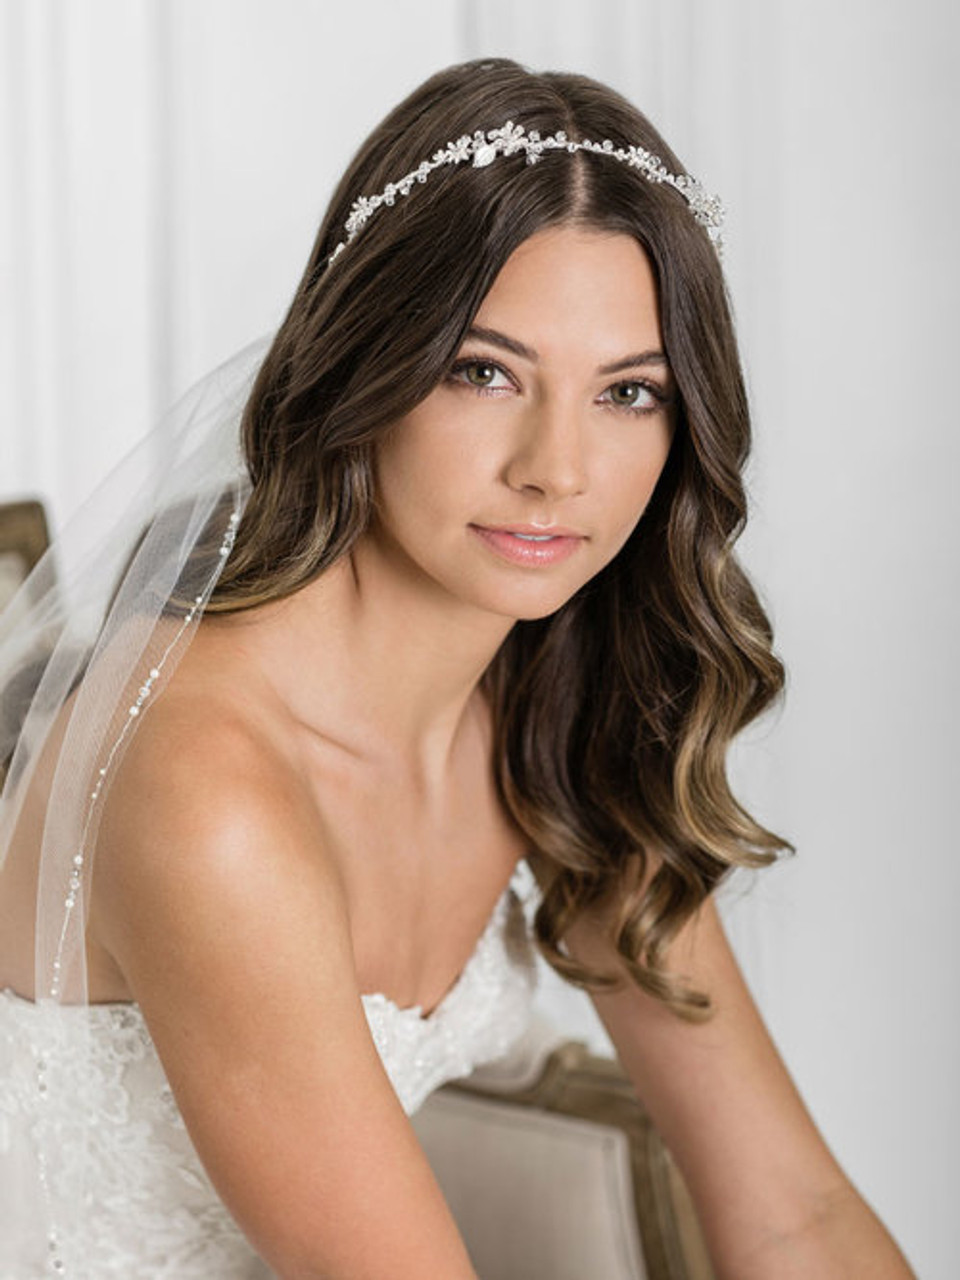 Bel Aire Bridal 6927 - Charming headband of dainty flowers and leaves accented with crystals